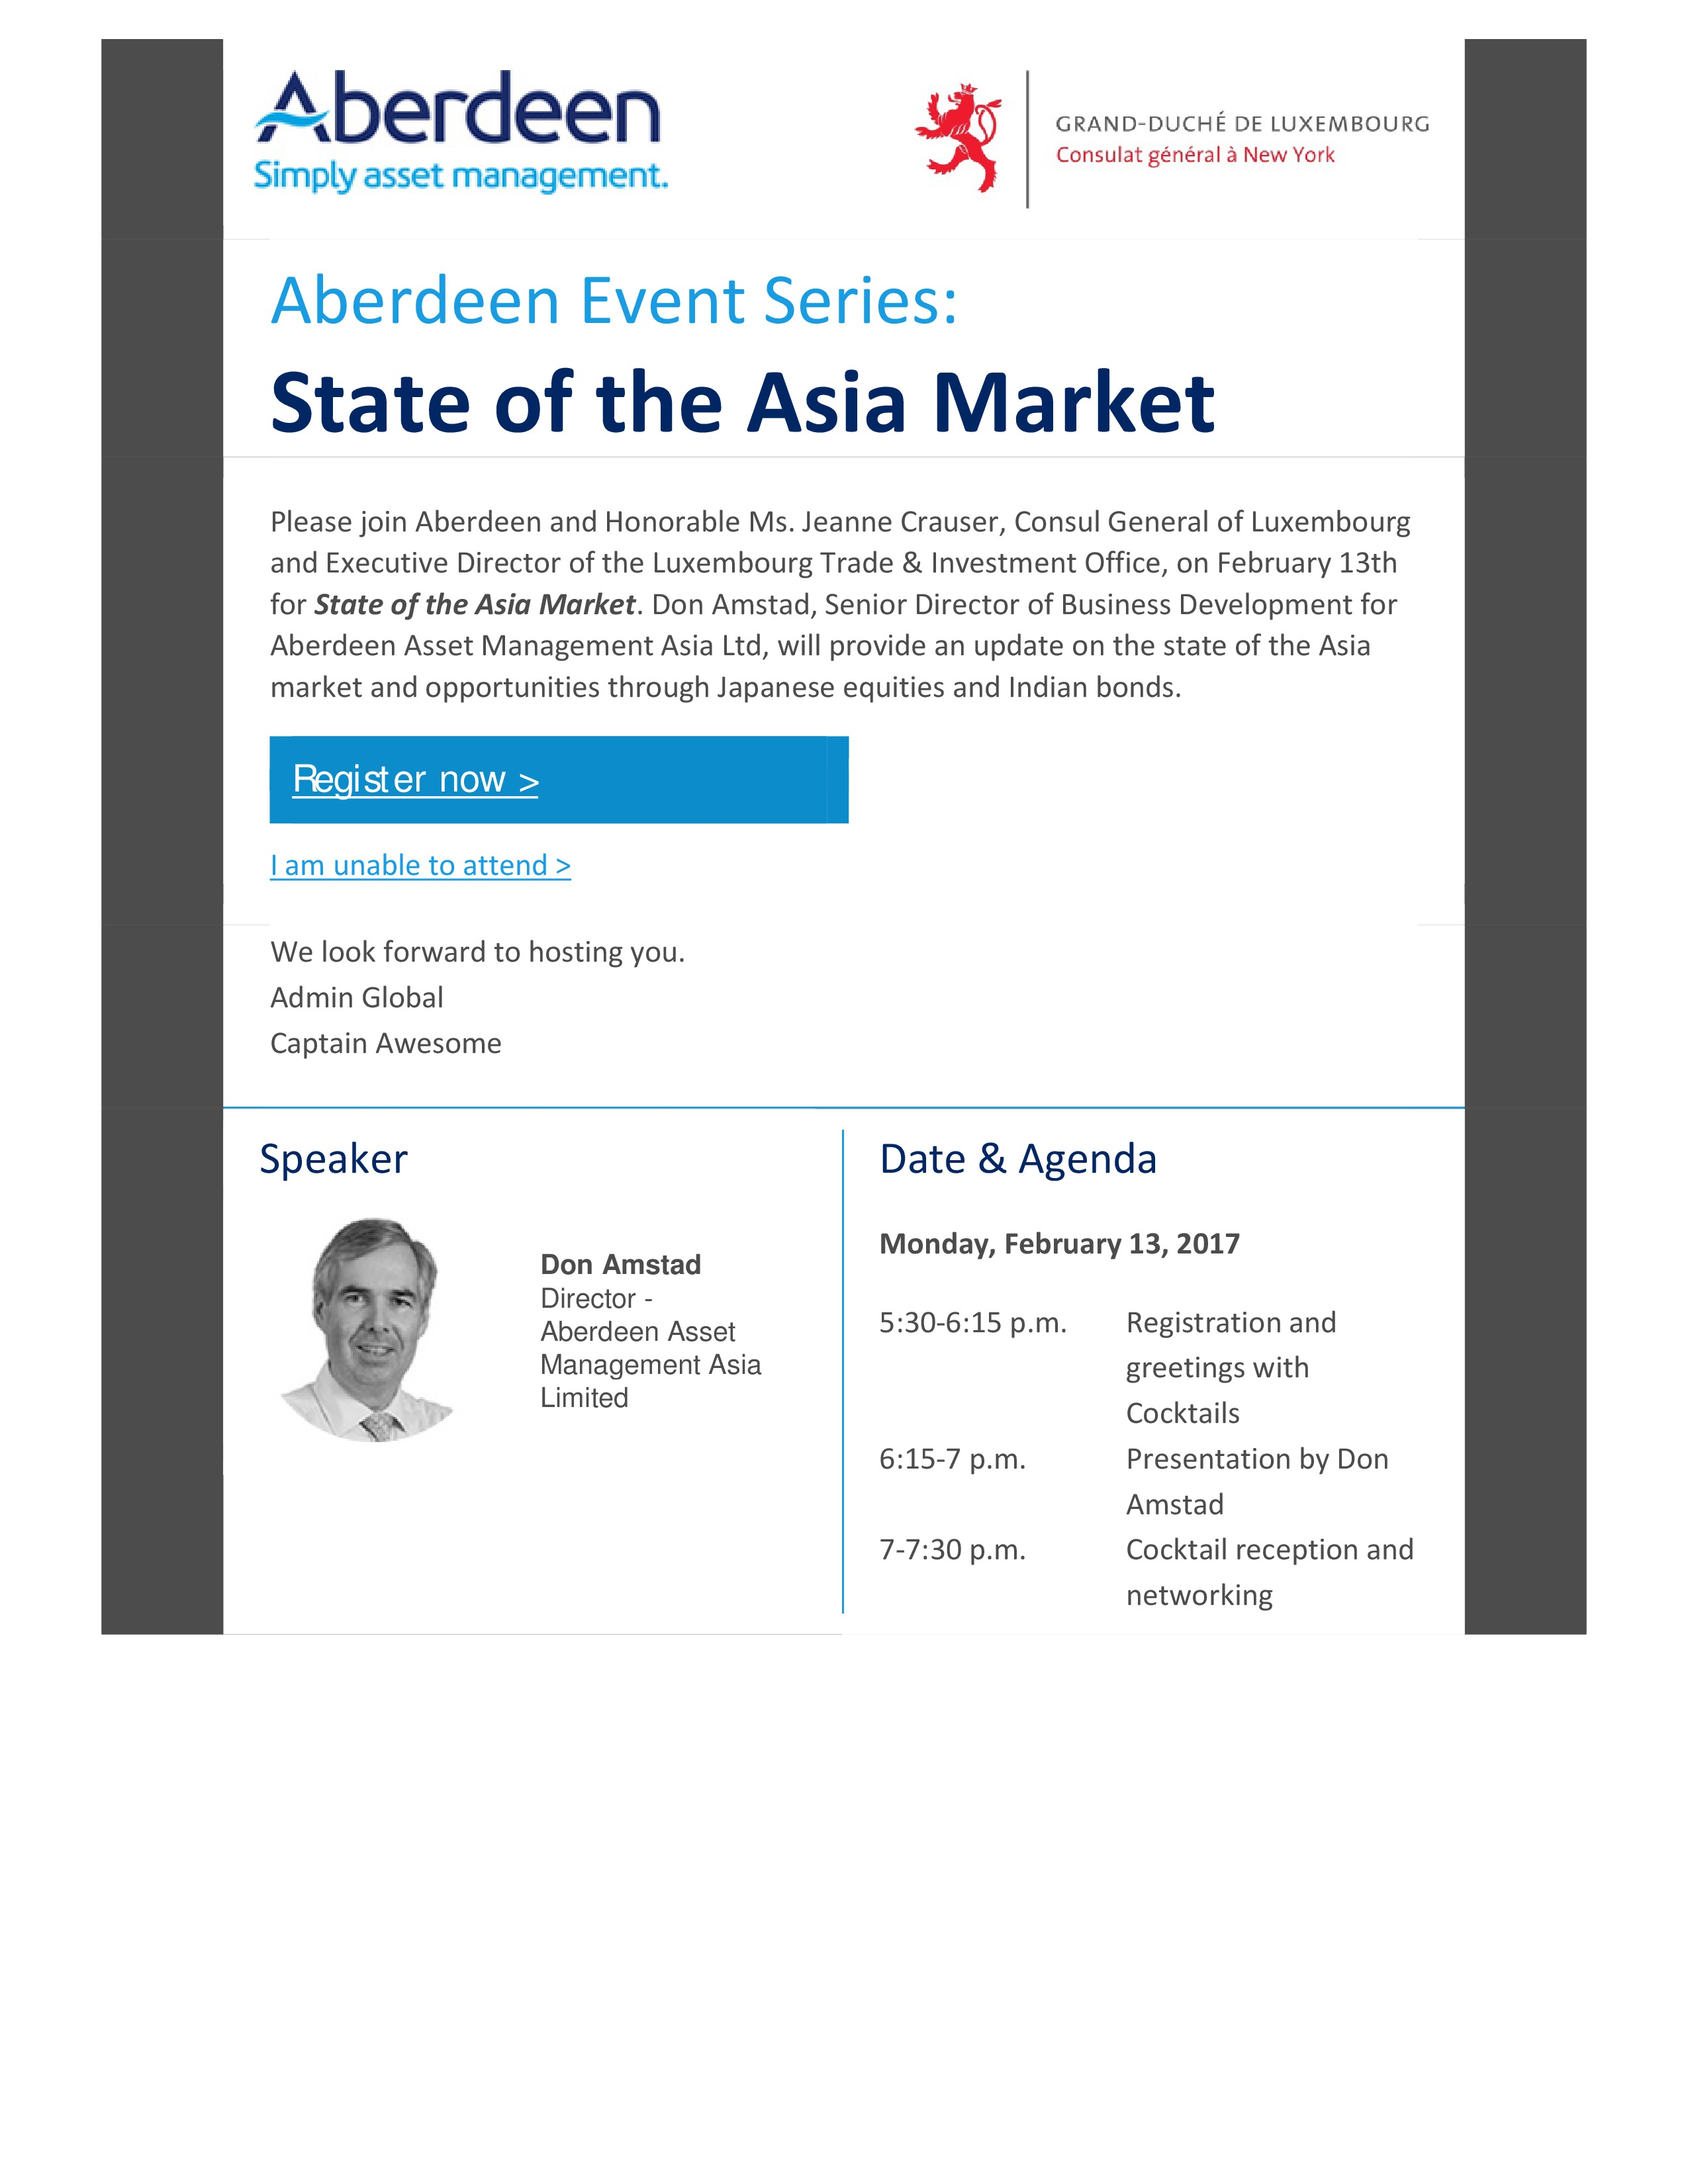 Mae Presentation Aberdeen Event Series State Of The Asian Market